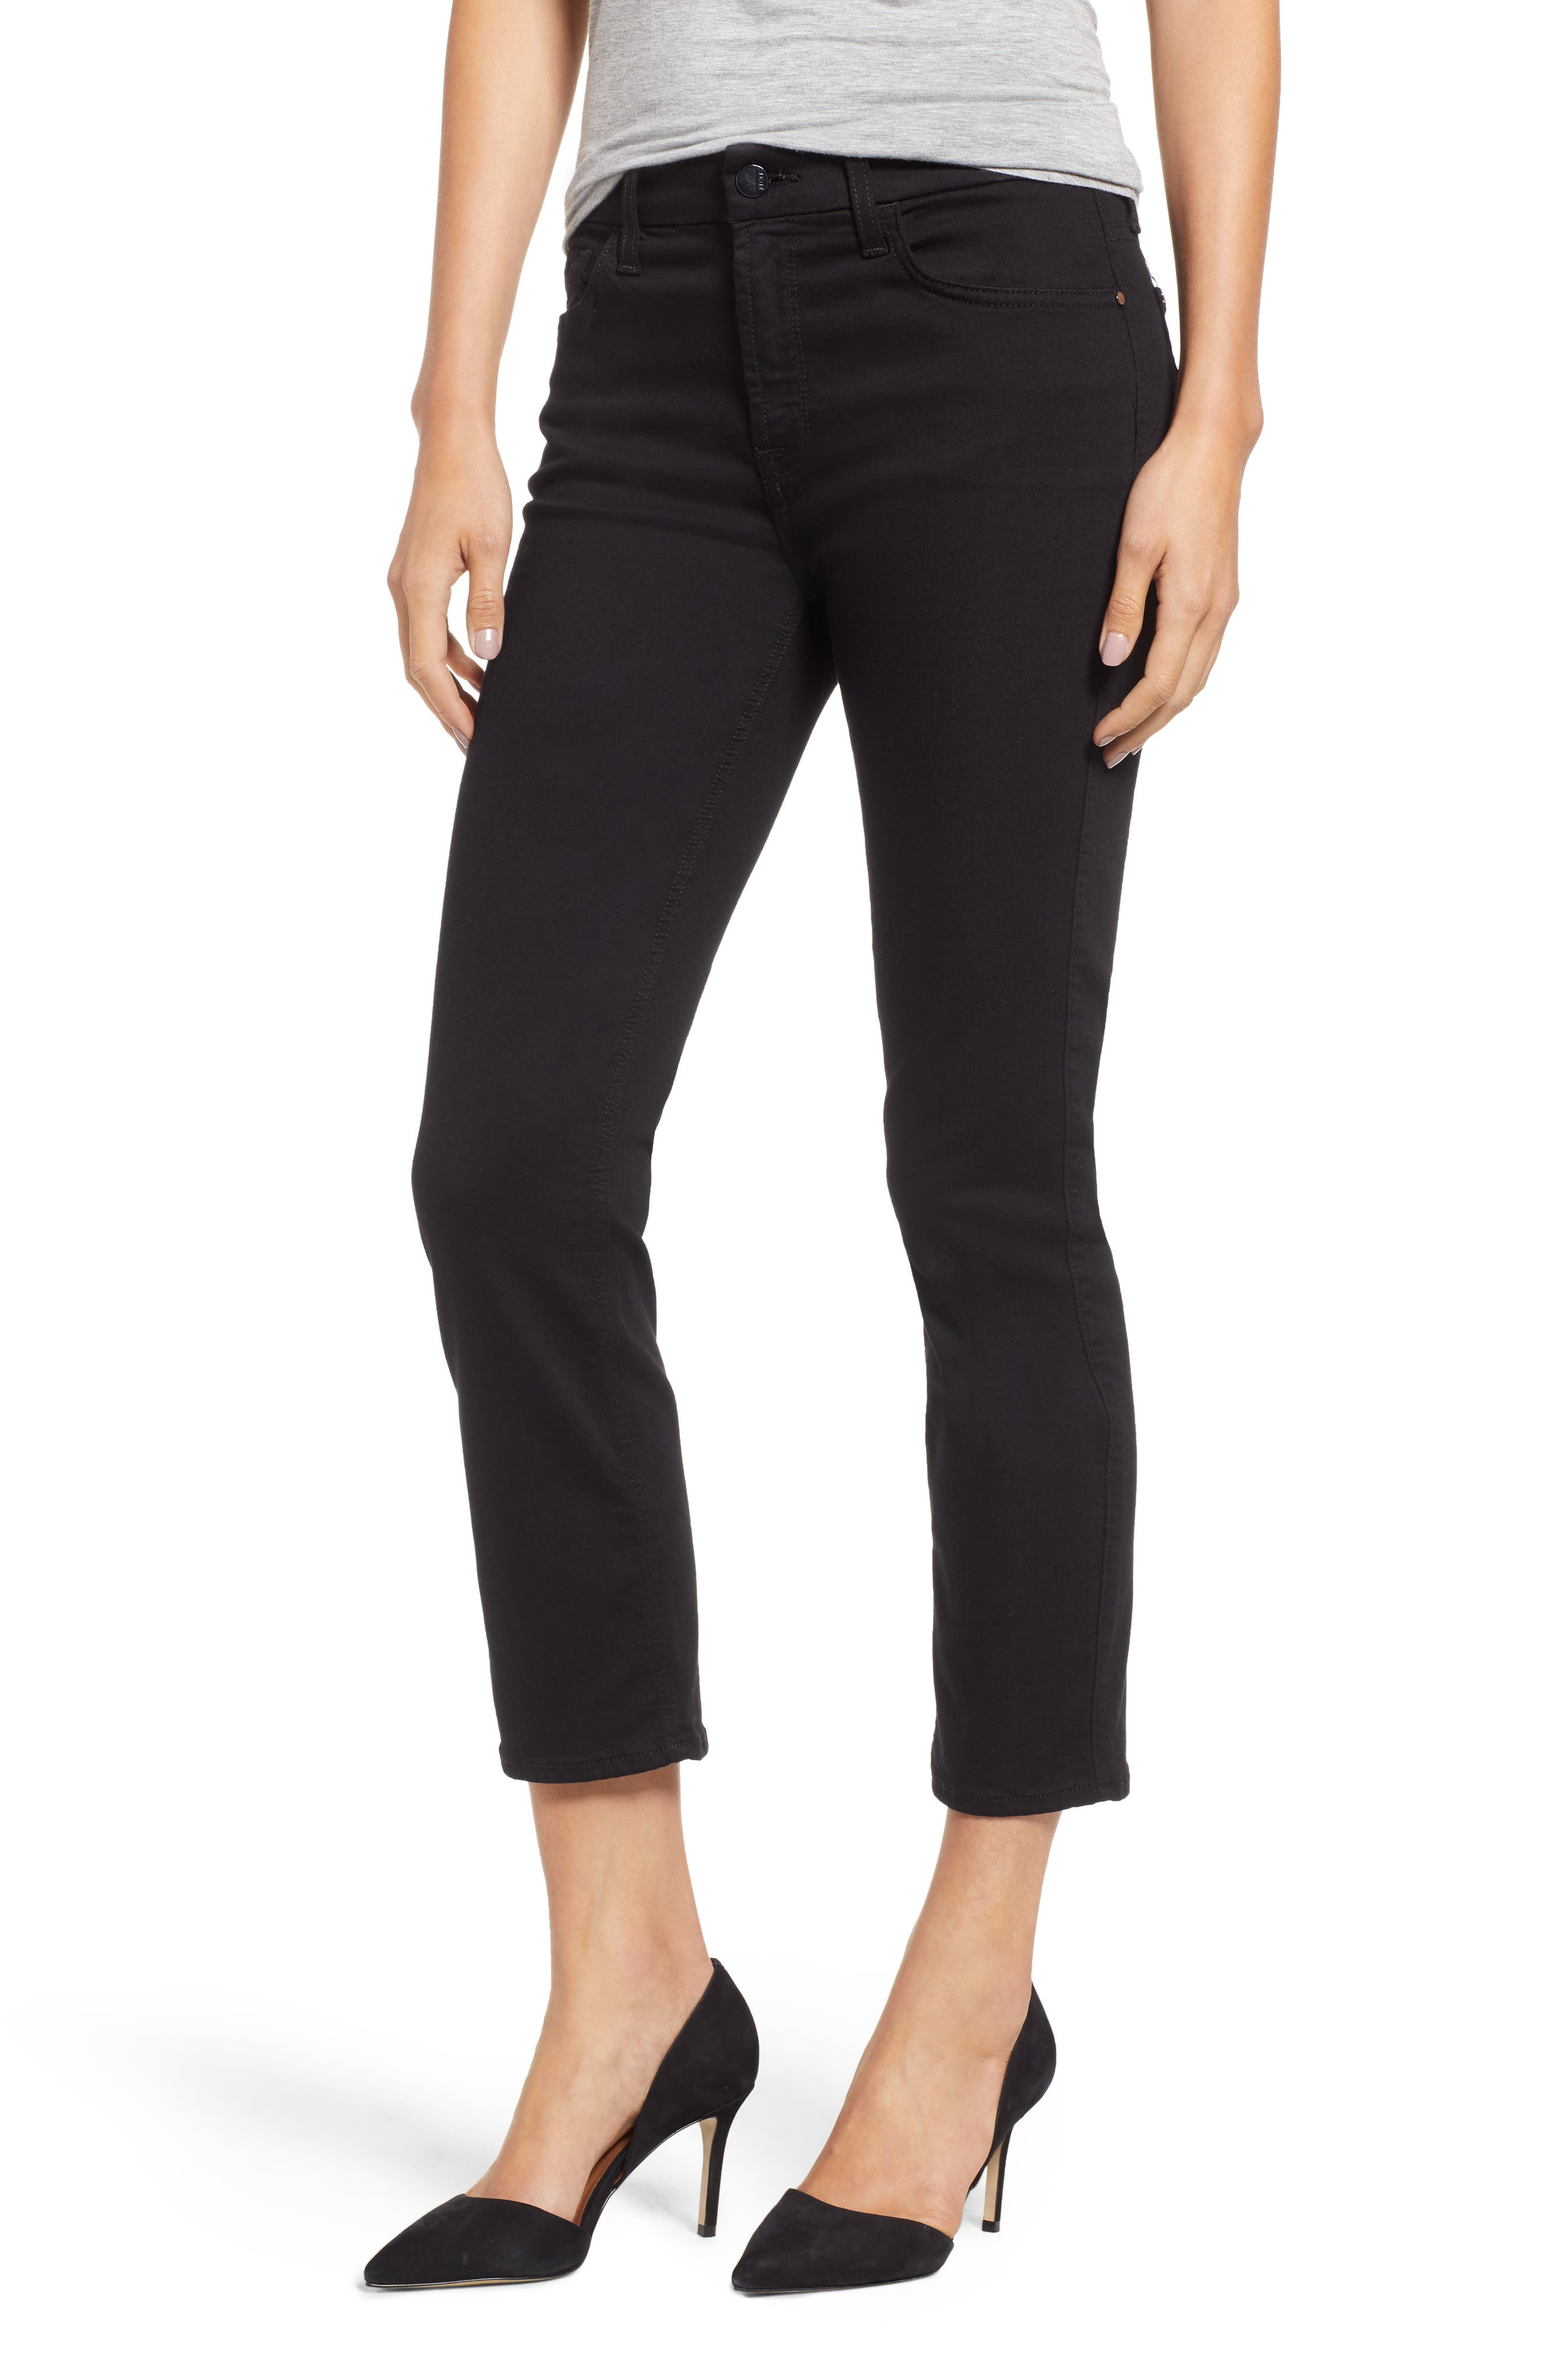 JEN7 BY 7 FOR ALL MANKIND, Stretch Crop Straight Leg Jeans, Main thumbnail 1, color, BLACK